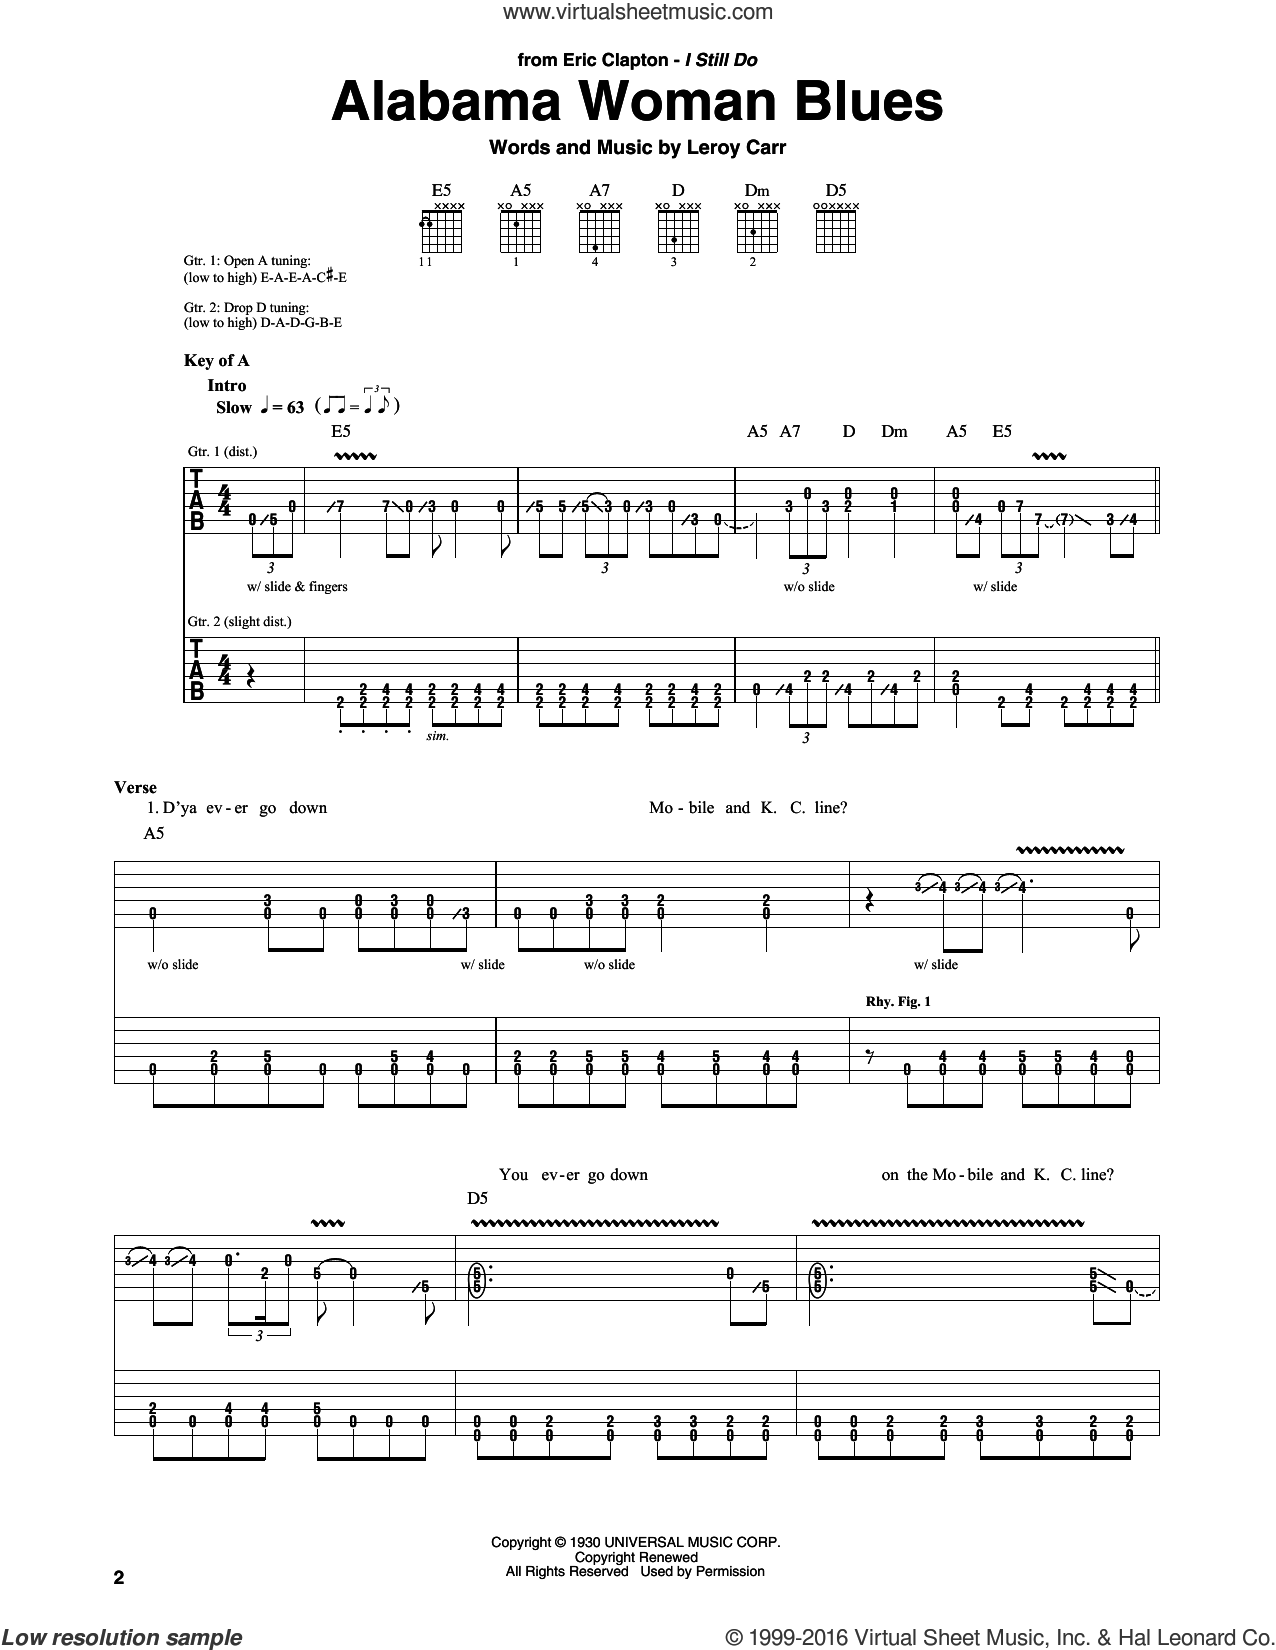 Alabama Woman Blues sheet music for guitar (rhythm tablature) by Eric Clapton and Leroy Carr, intermediate. Score Image Preview.